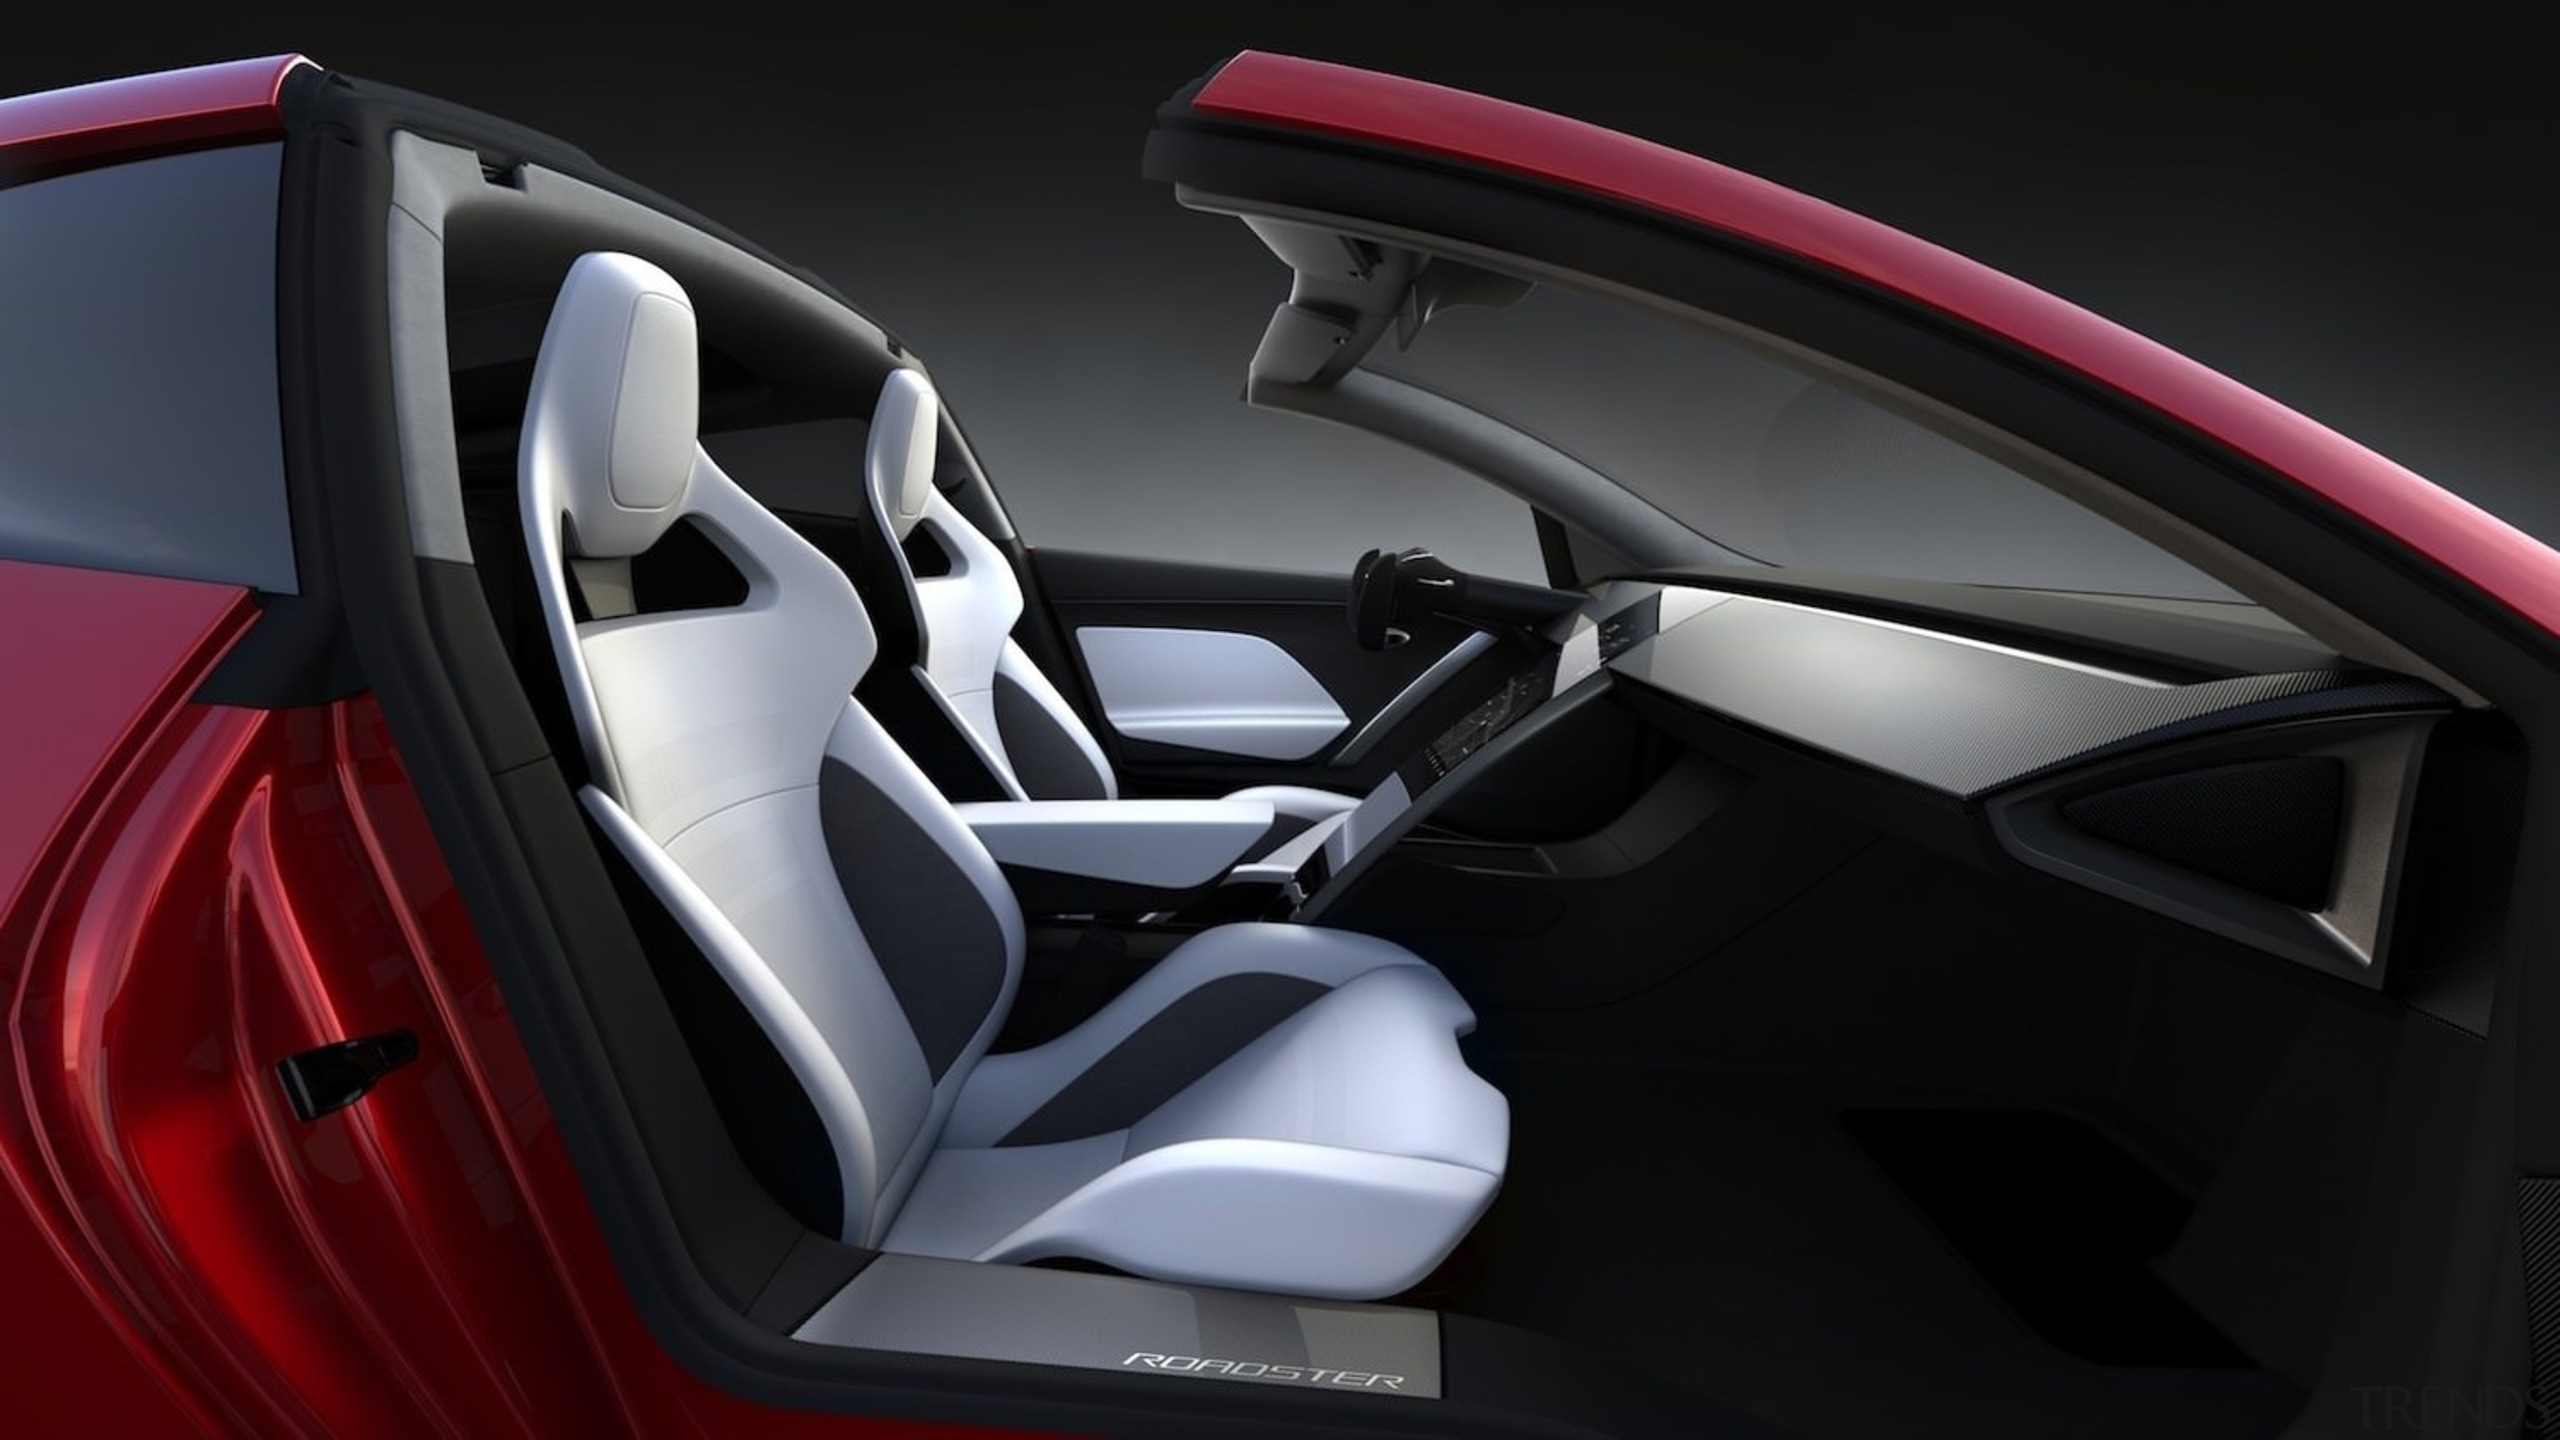 Tesla's new Roadster - Tesla's new Roadster - automotive design, car, car seat, car seat cover, center console, concept car, land vehicle, motor vehicle, personal luxury car, product design, sports car, steering wheel, vehicle, vehicle door, black